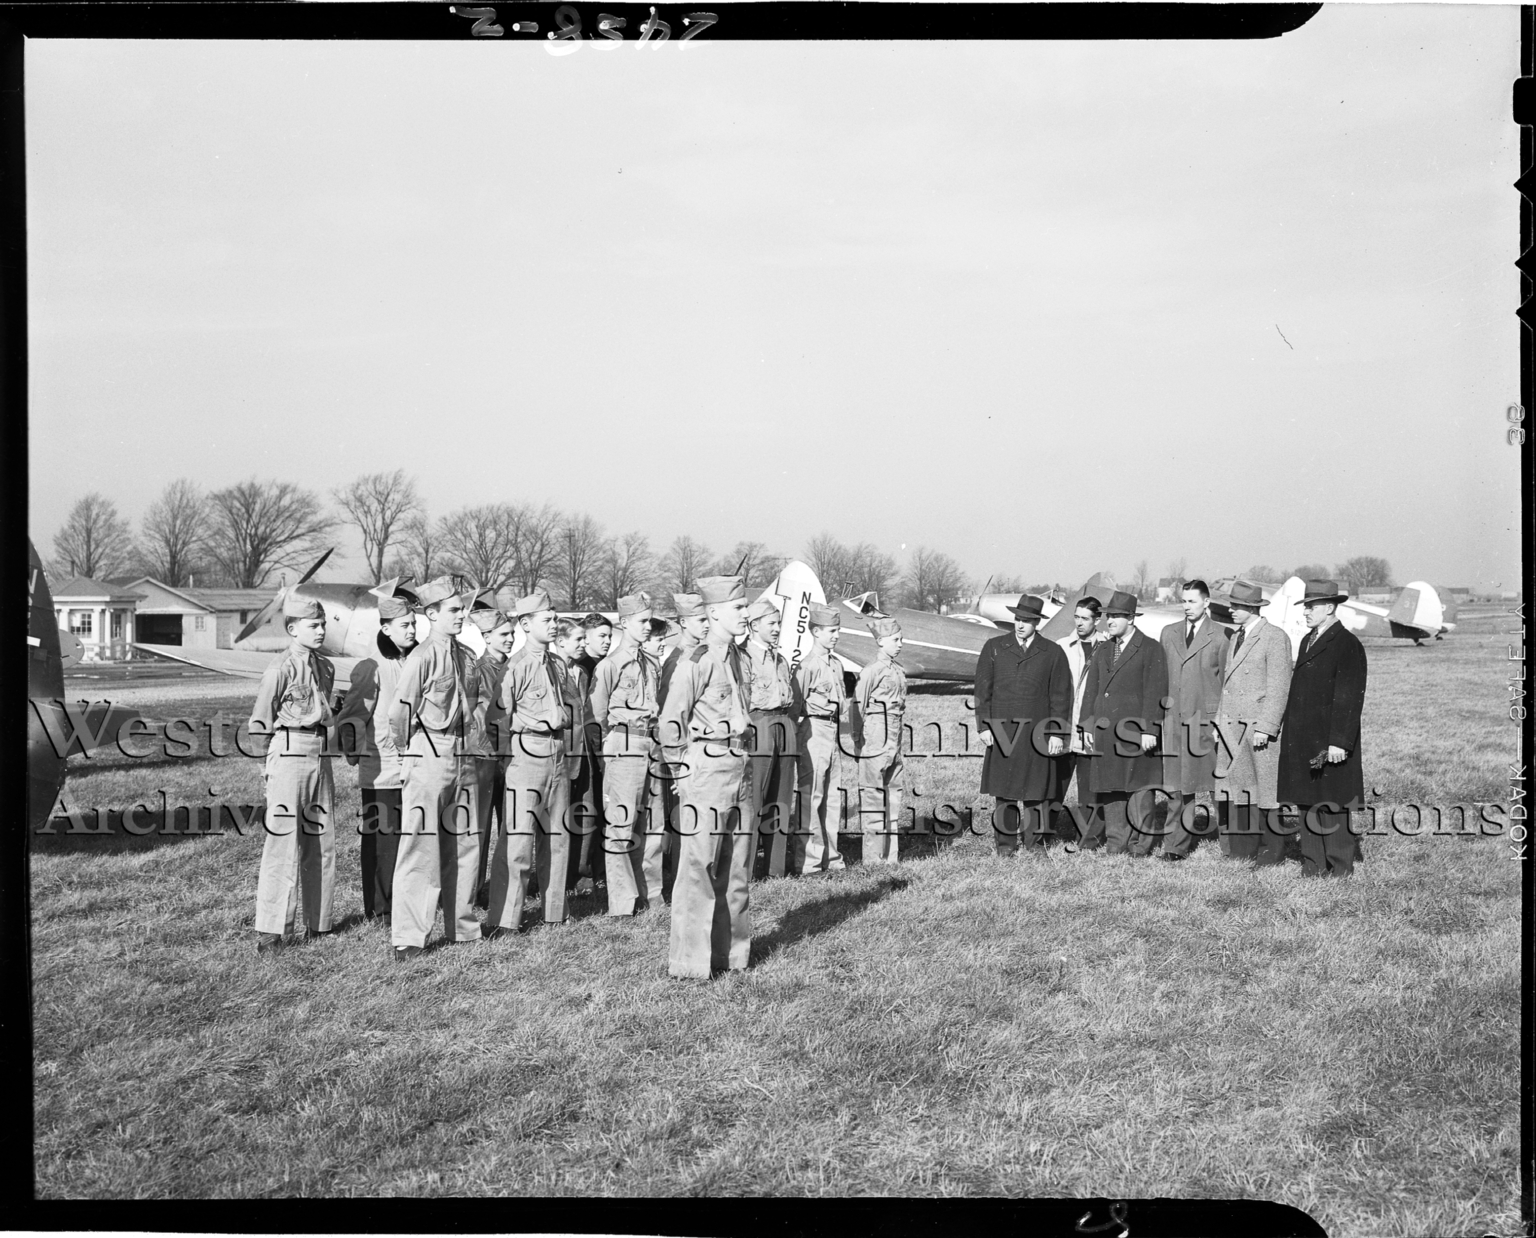 Air scouts standing at attention for inspection by men in winter coats